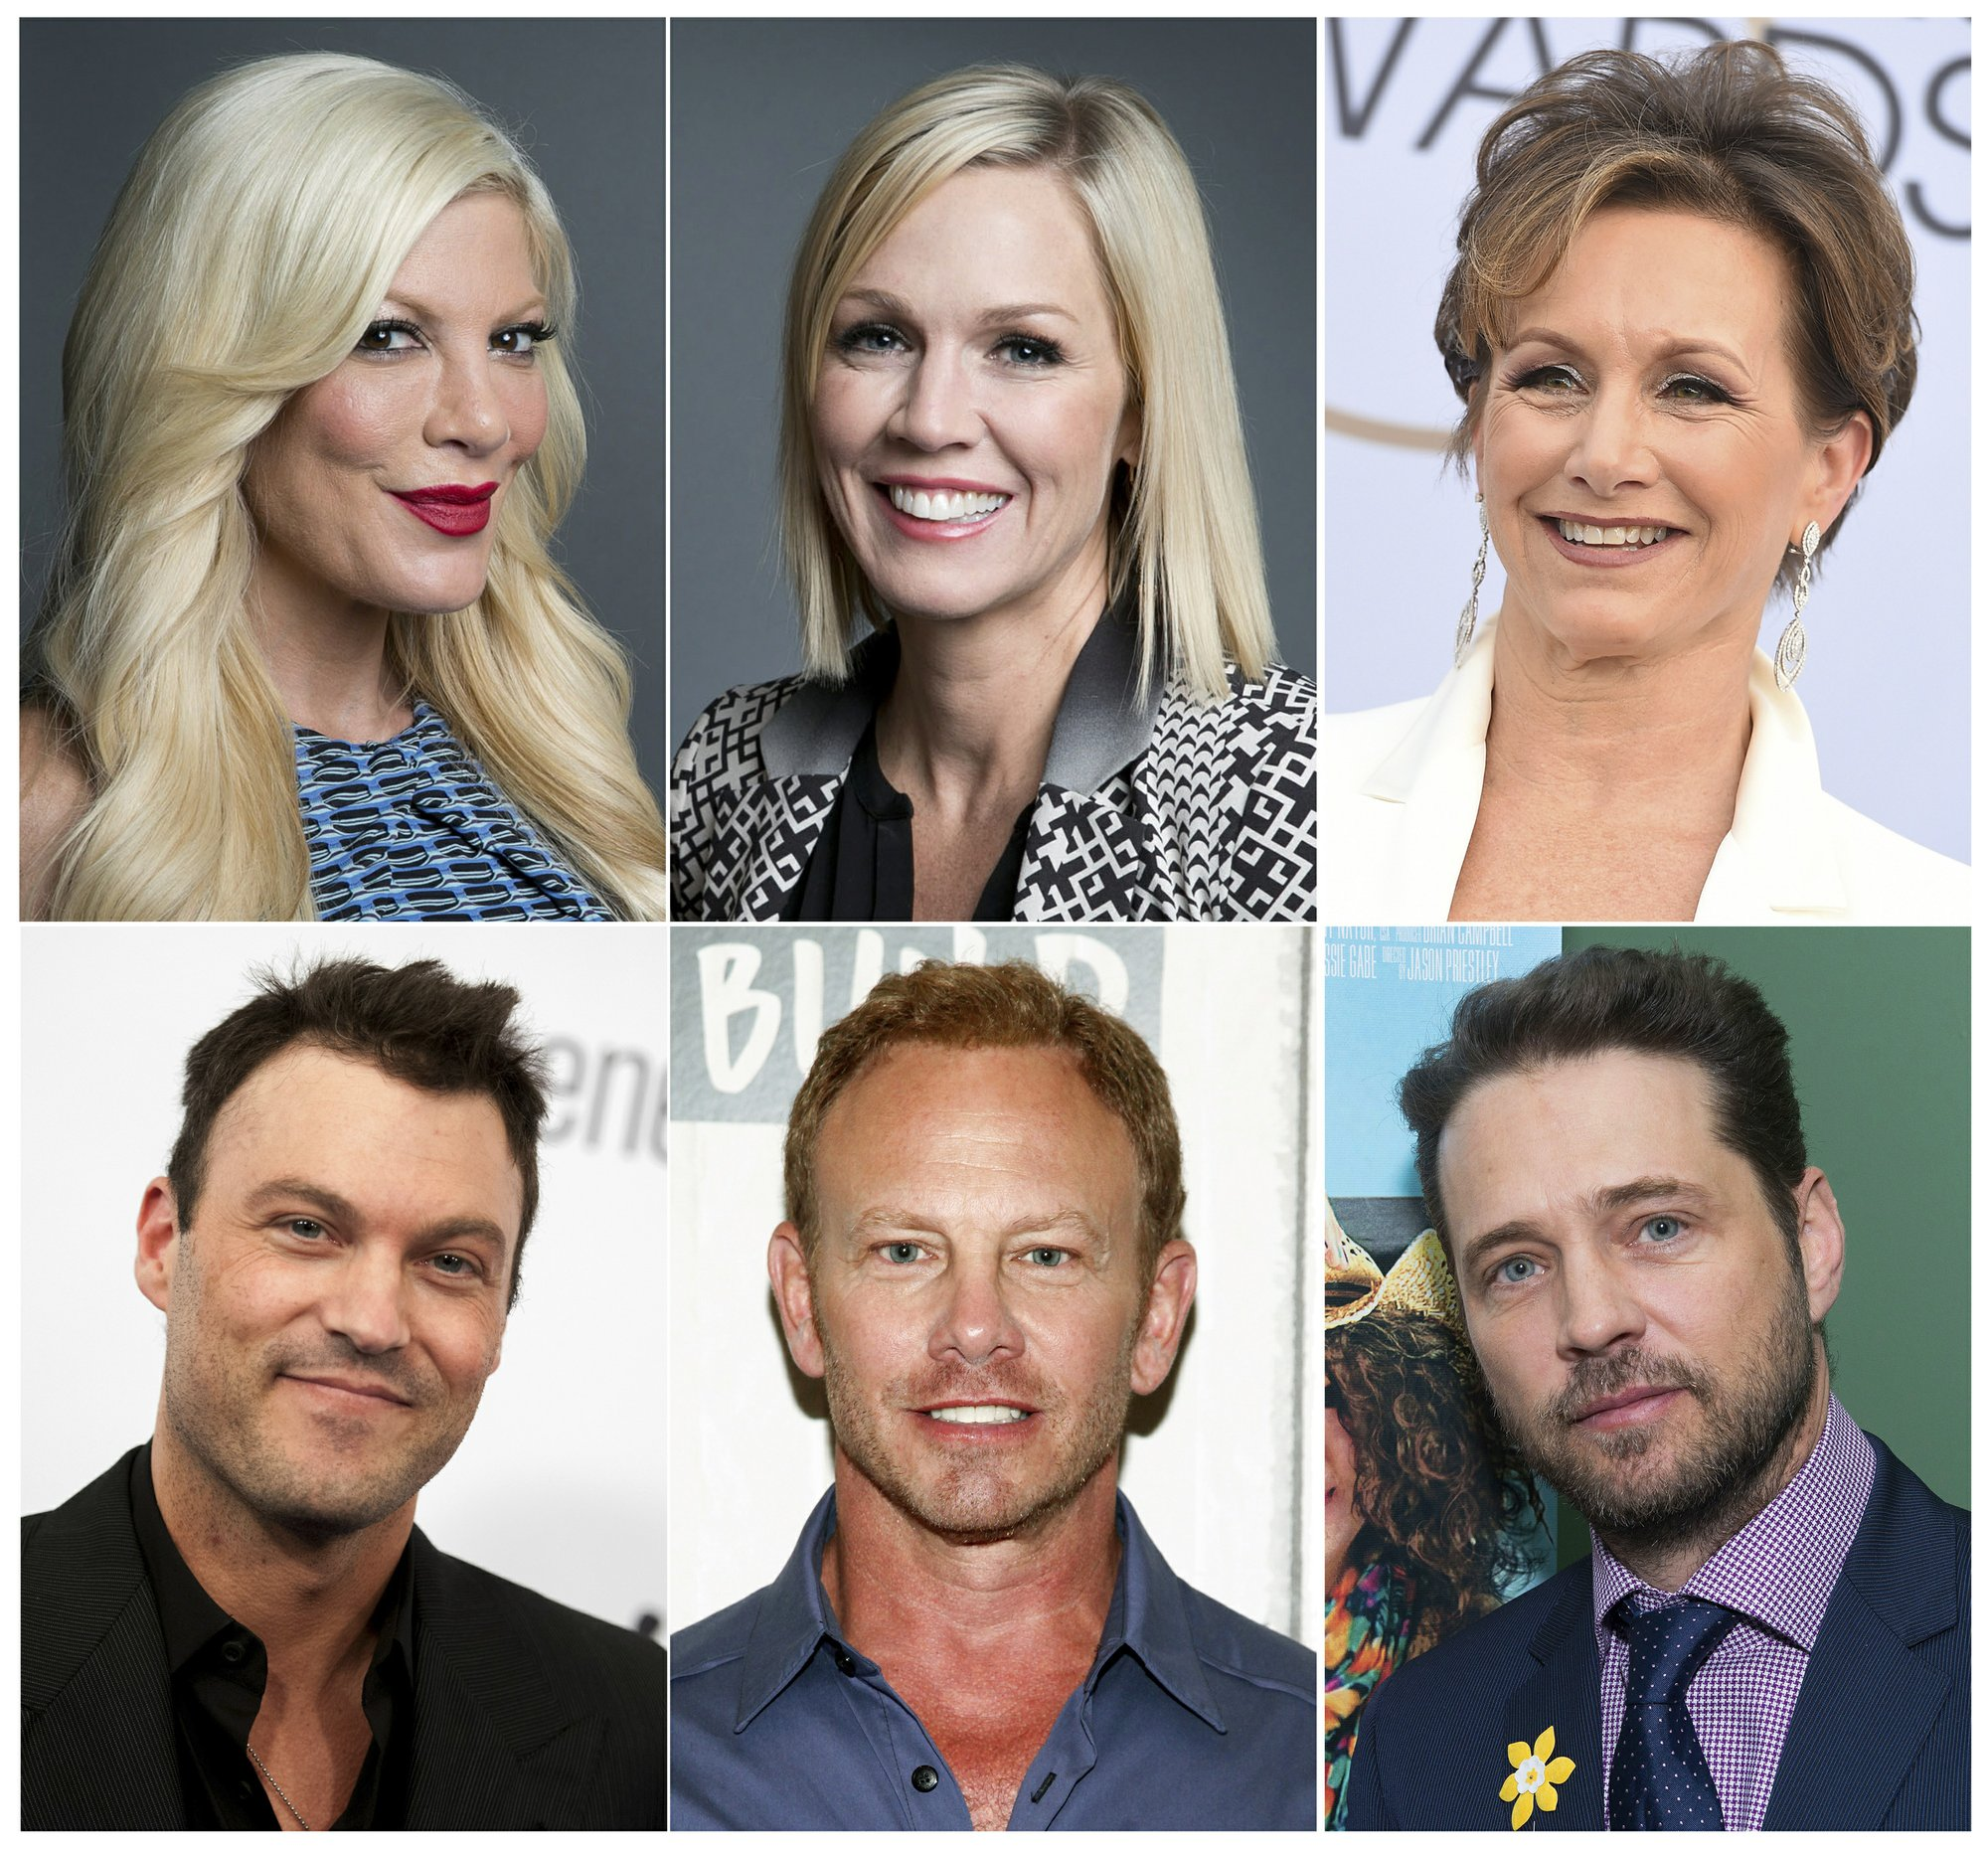 'Beverly Hills, 90210' cast reunites, 'irreverence' in store